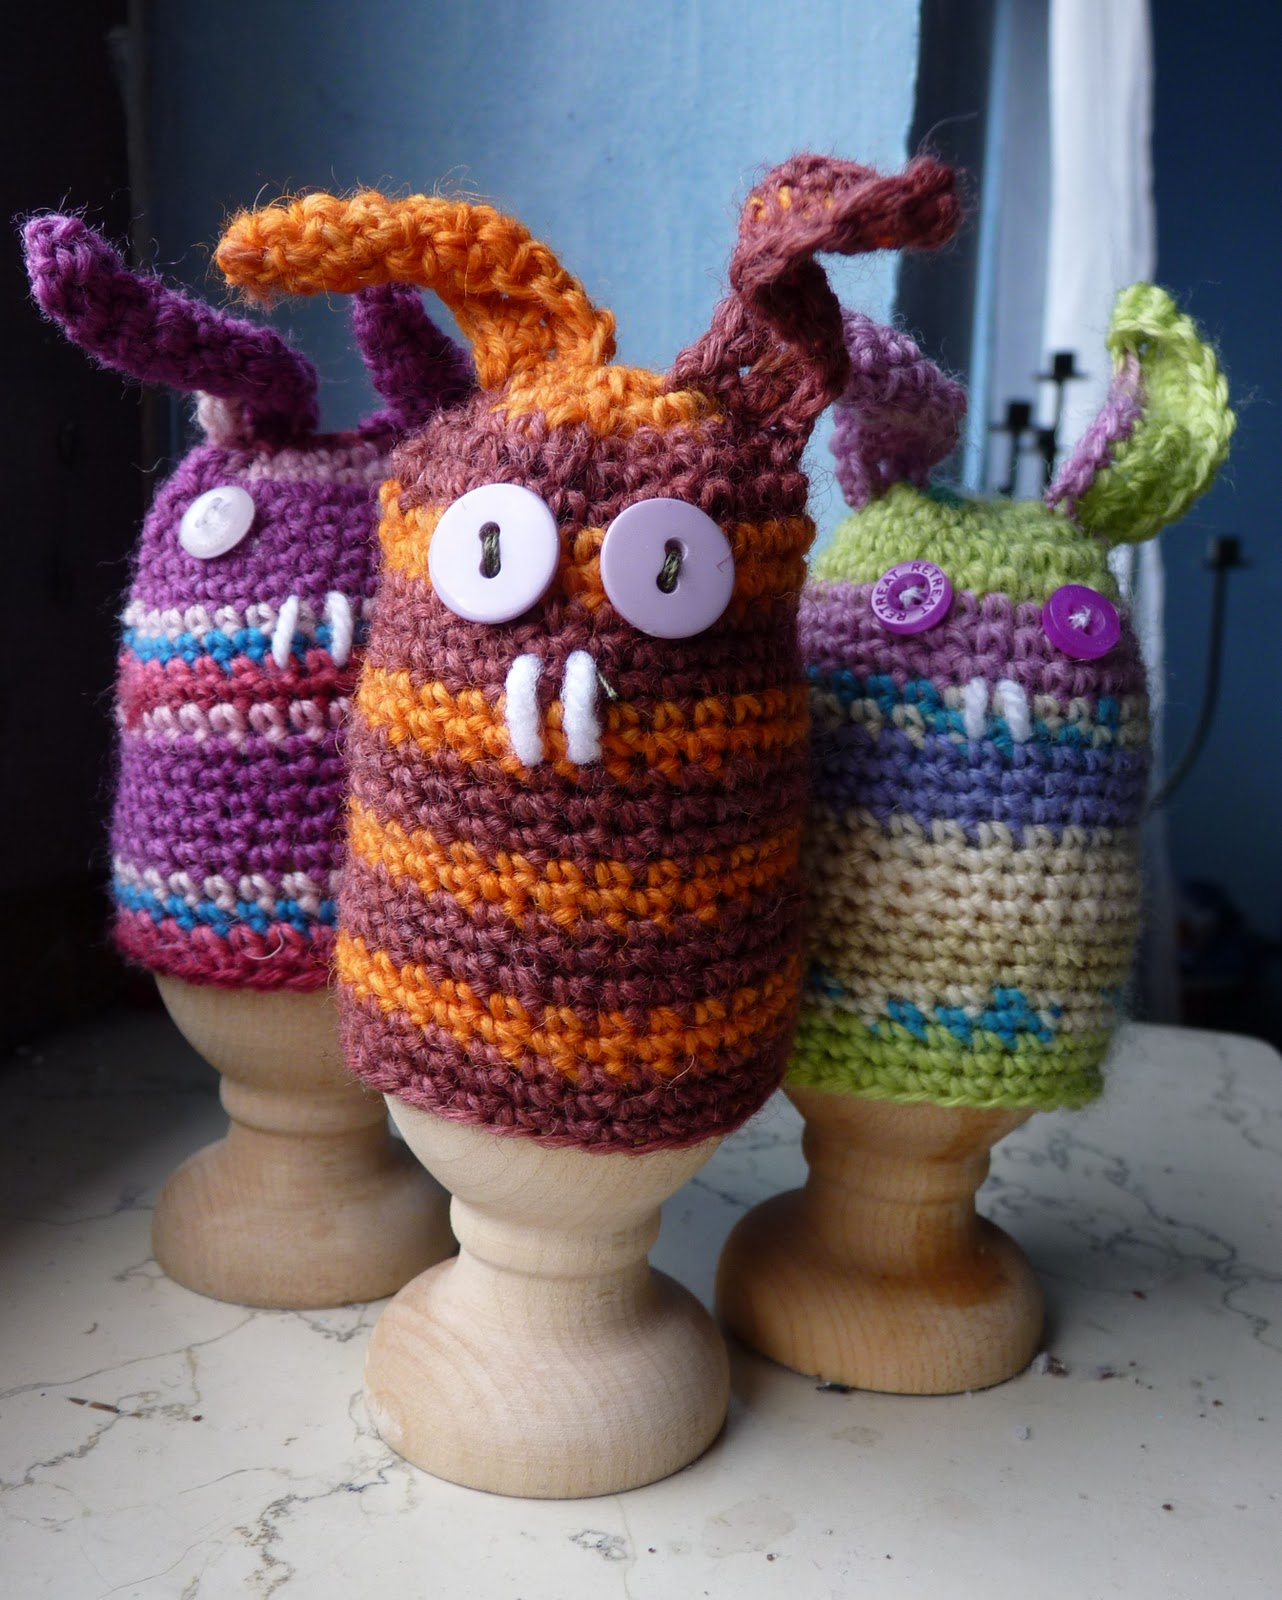 The Gingerbread Lady Killer Bunny Egg Cozy - Easter #crochet